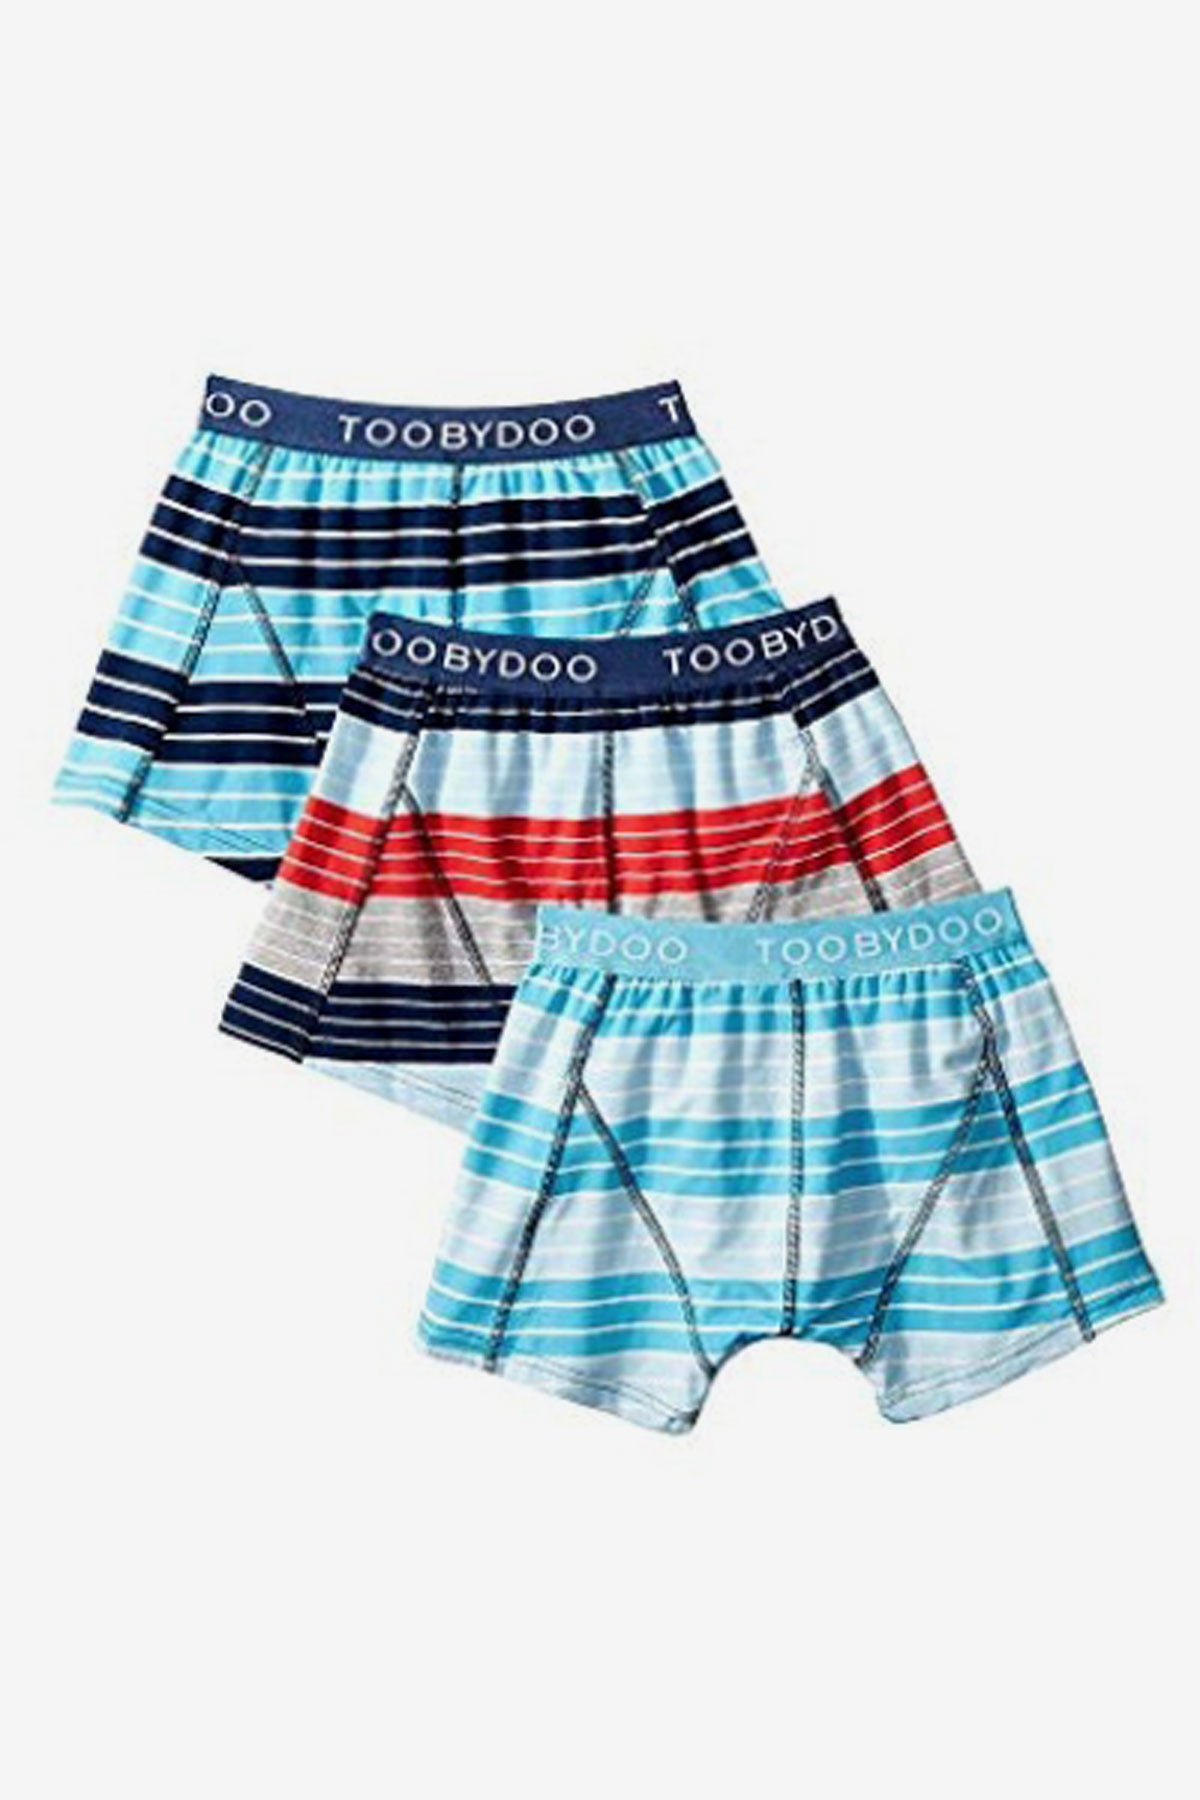 Toobydoo Boys Underwear 3-Pack - Red/Blue